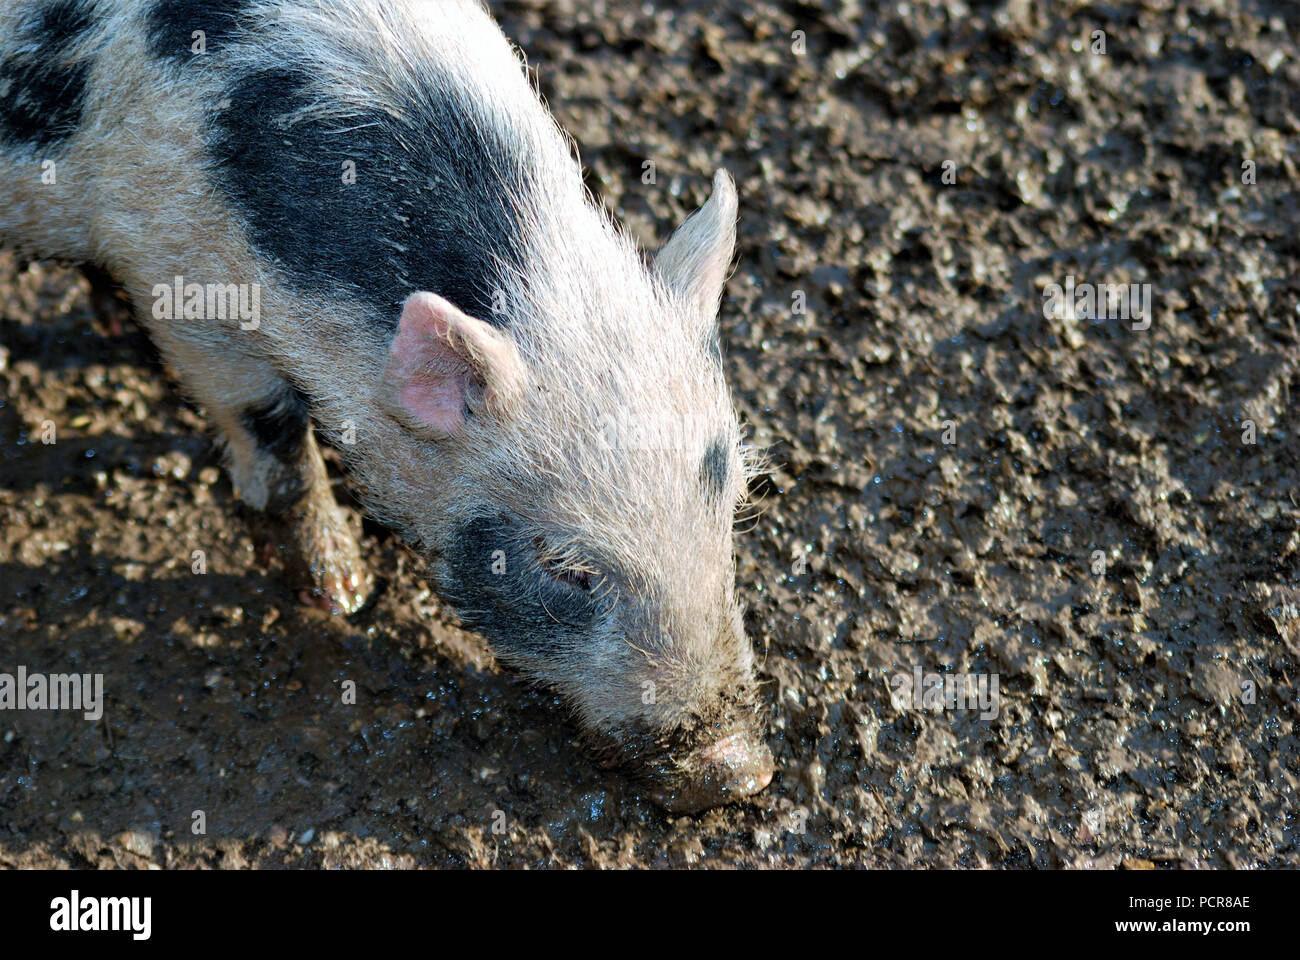 A piglet sniffing in the mud of an animal park - Stock Image